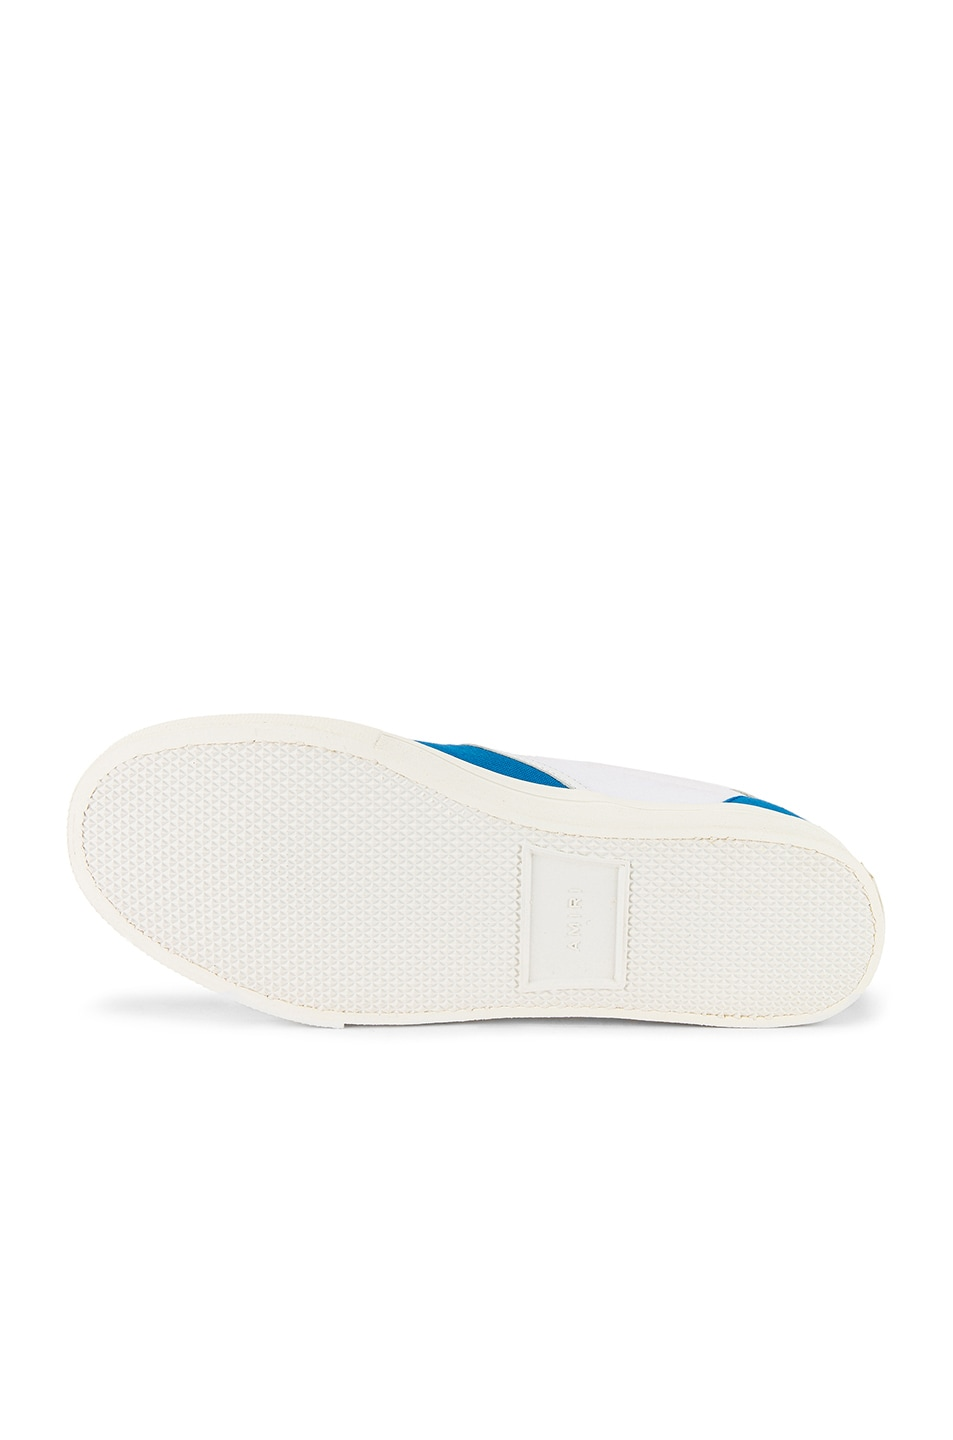 Image 6 of Amiri Skel Toe Slip On in Blue & White & White